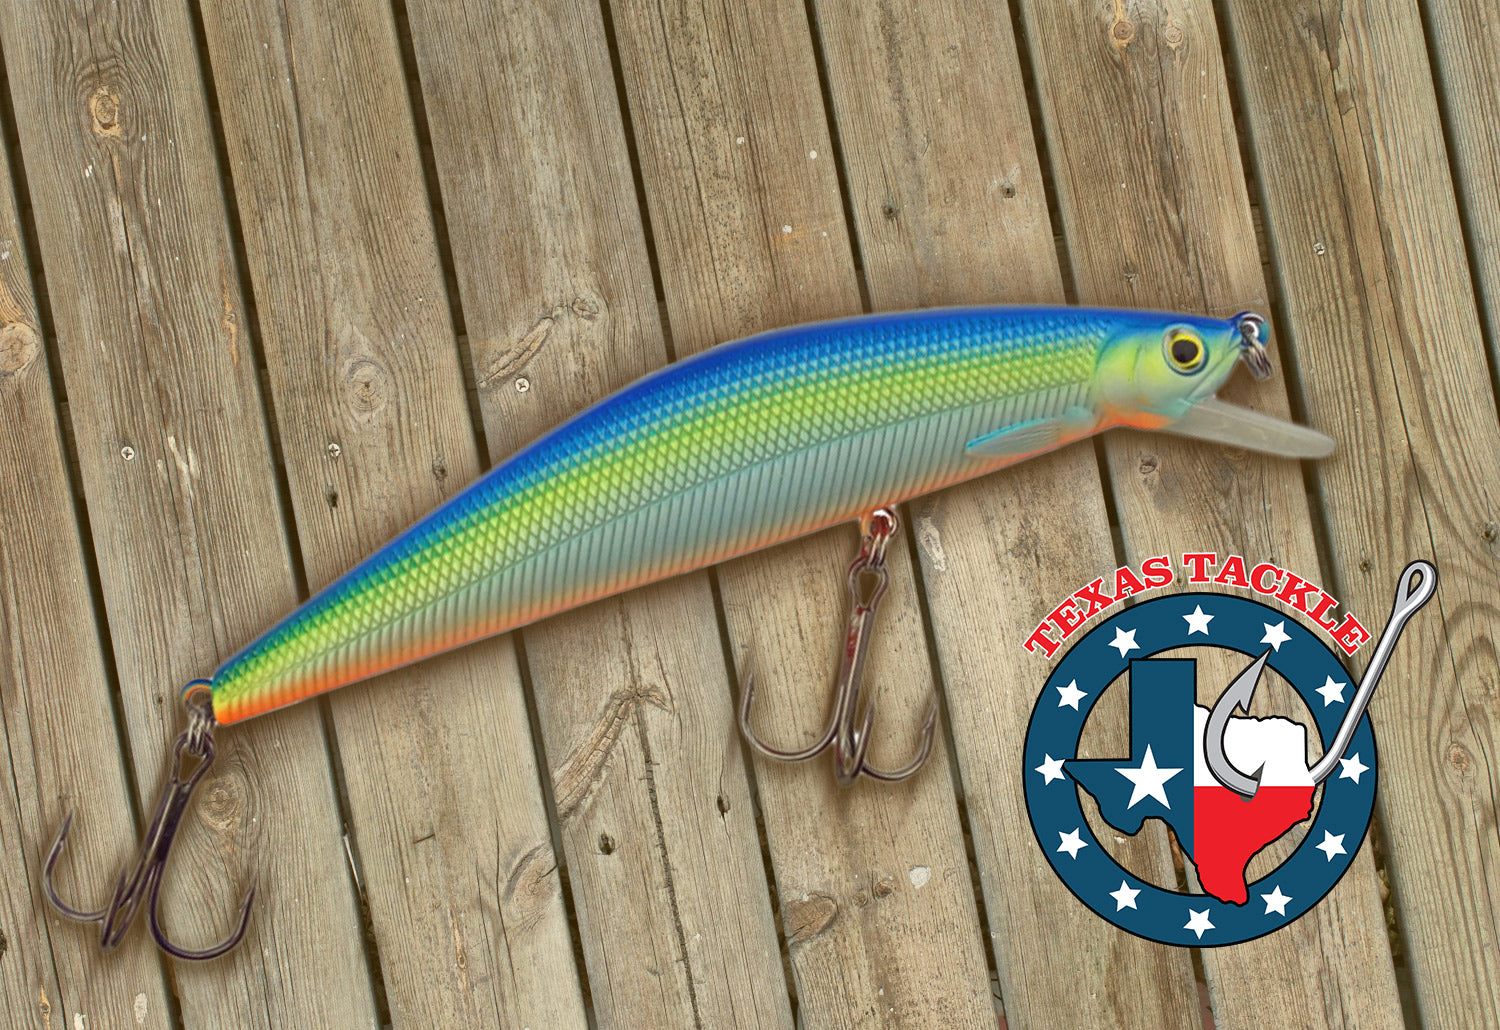 Texas Tackle Jacksonville Jerk is the jerkbait pictured that was included in the Lucky Tackle Box subscription box.